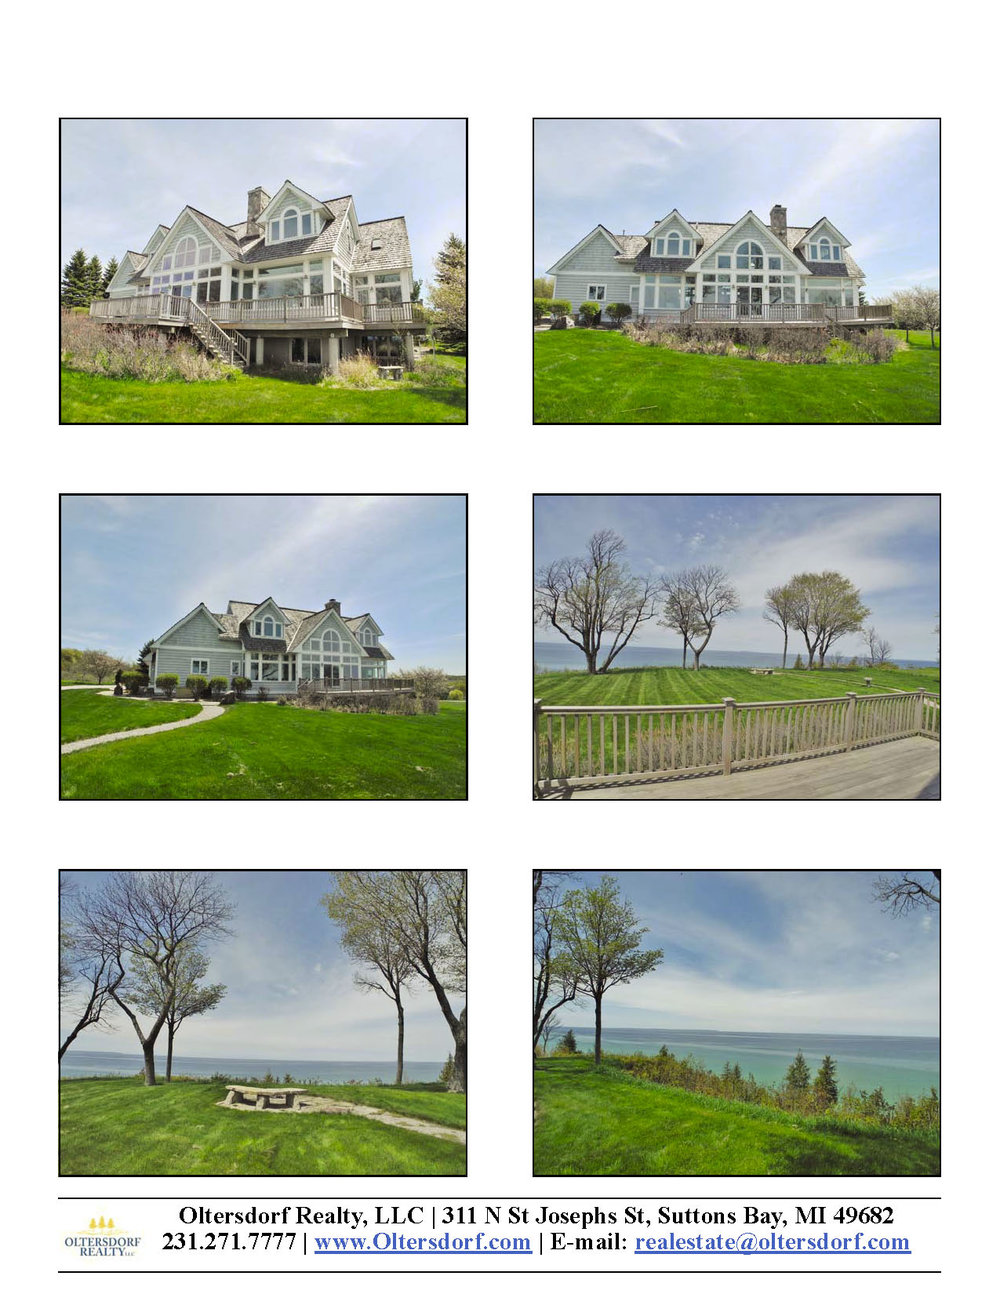 11945 N Foxview Drive, Northport, MI –Lake Michigan Views & Shared Access - Oltersdorf Realty LLC Marketing Packet (2).jpg